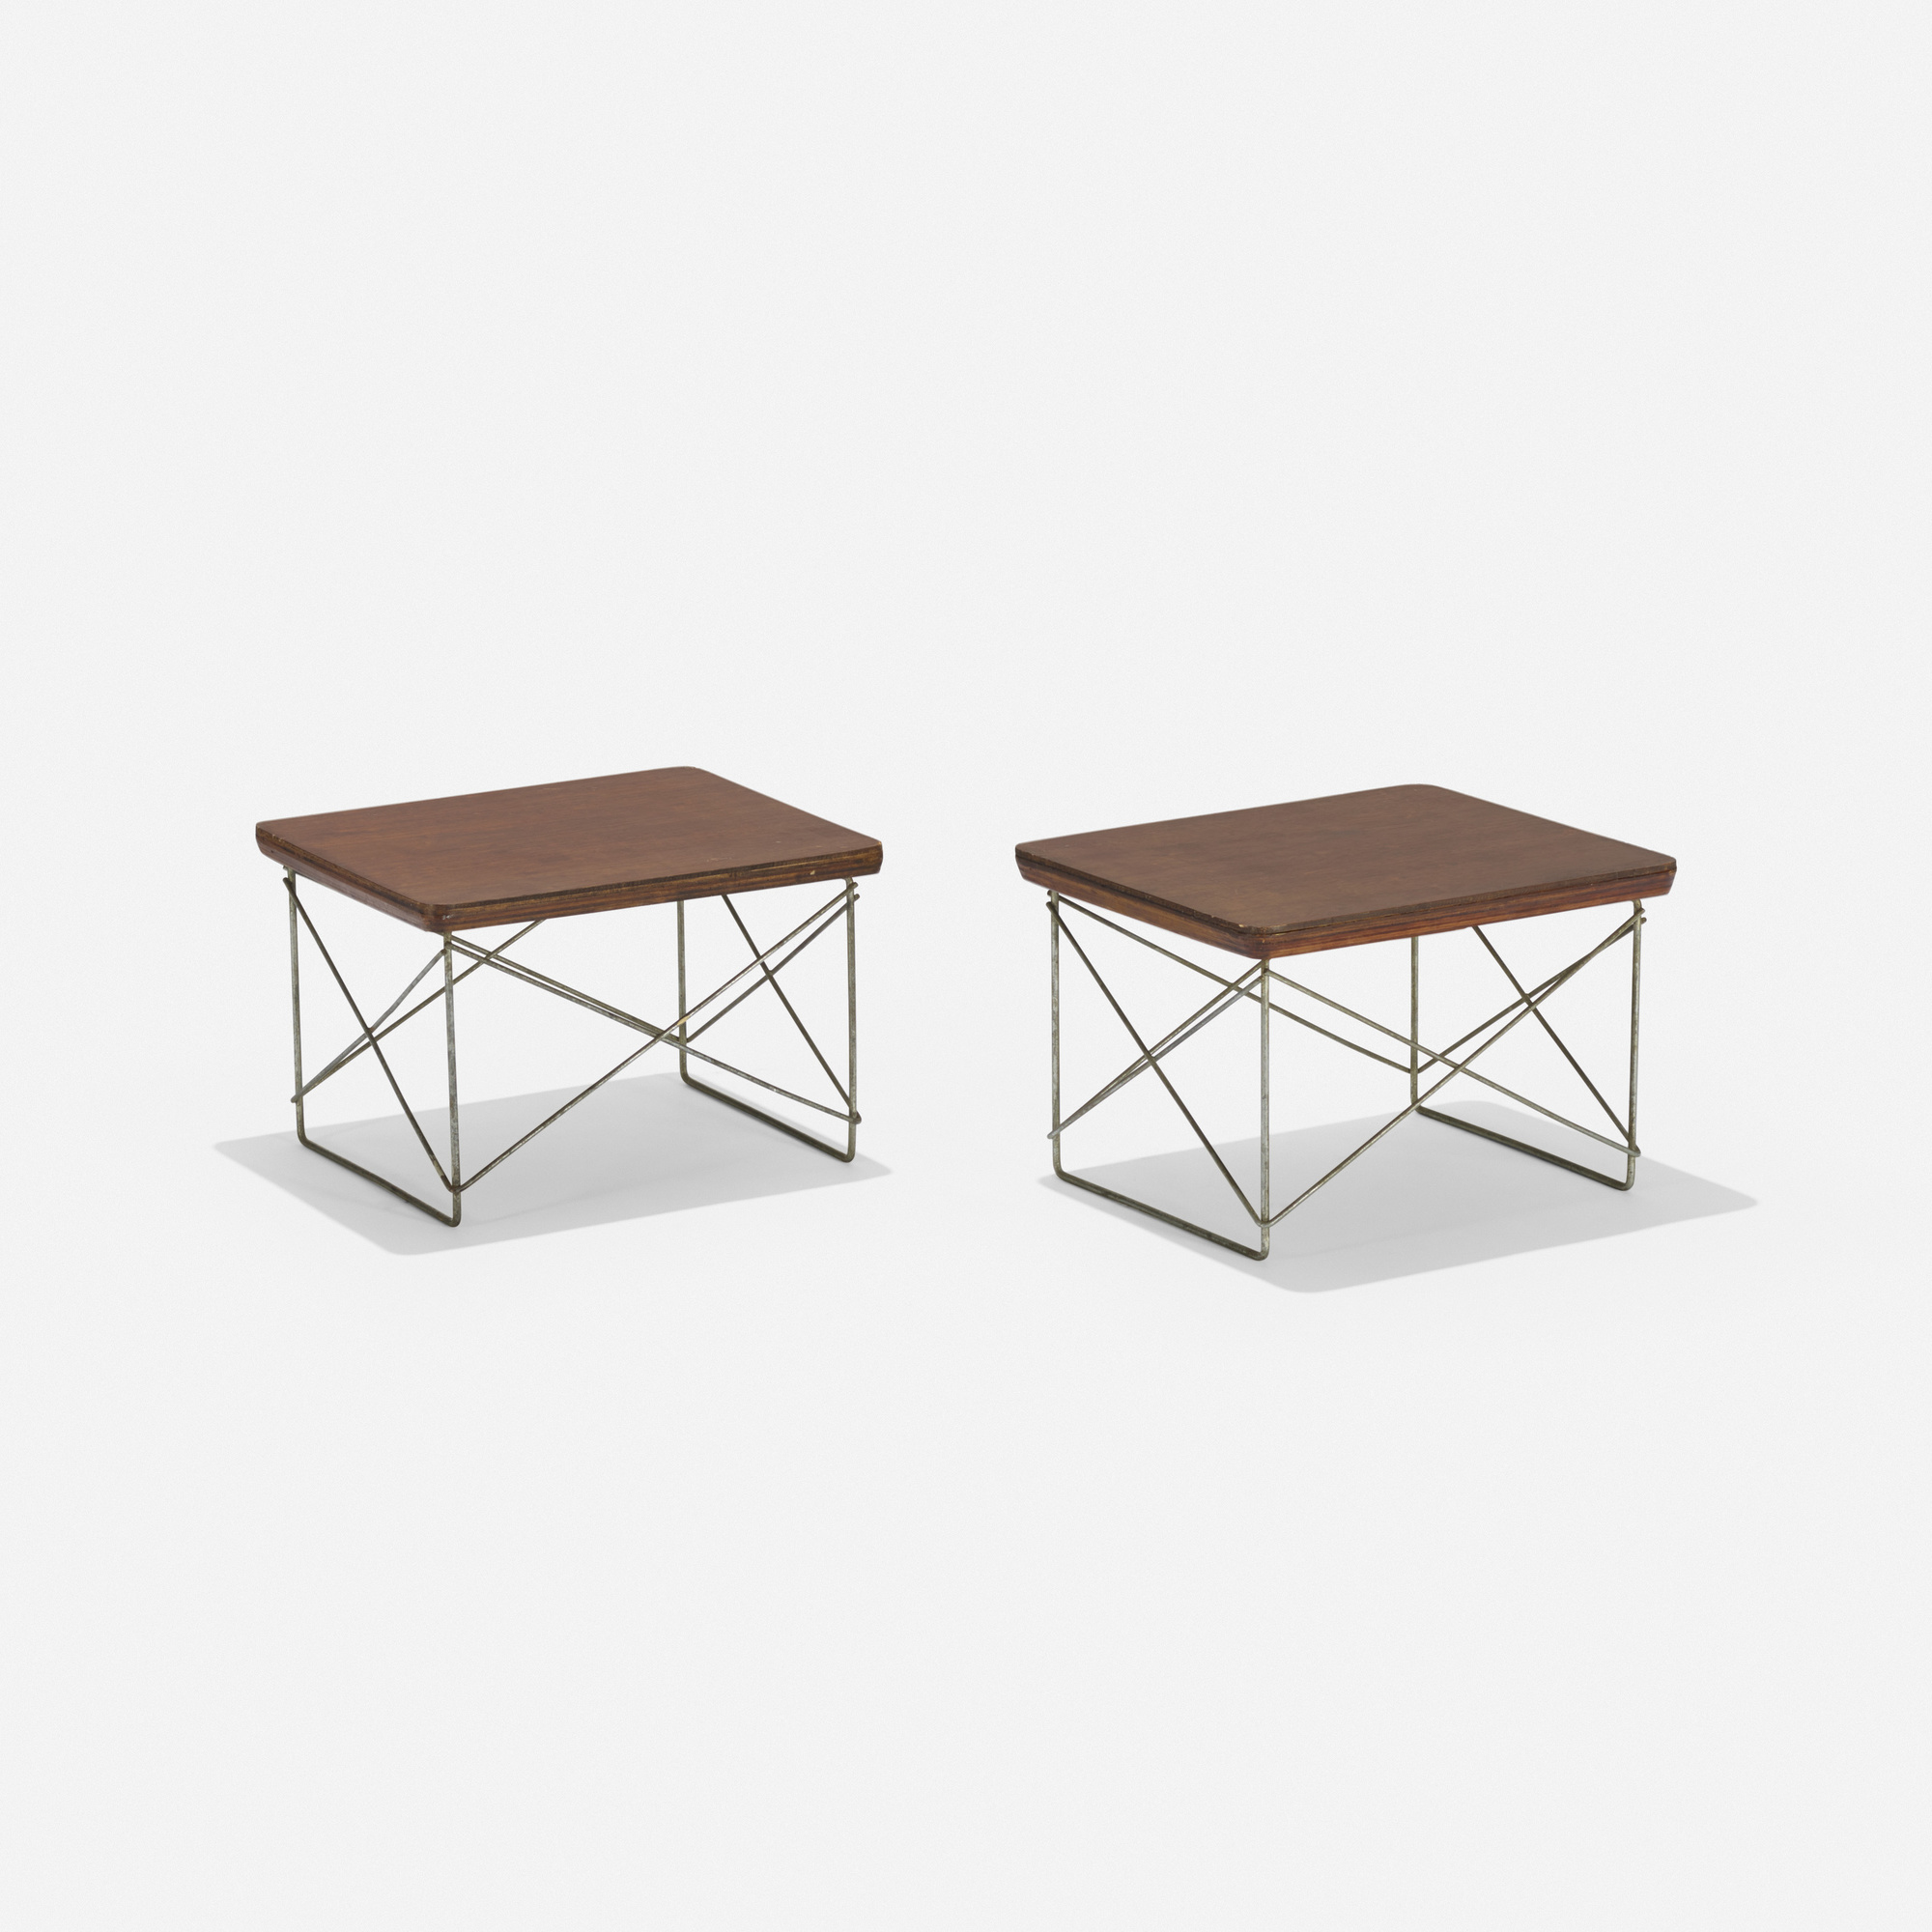 147: Charles and Ray Eames / LTRs, pair (1 of 2)